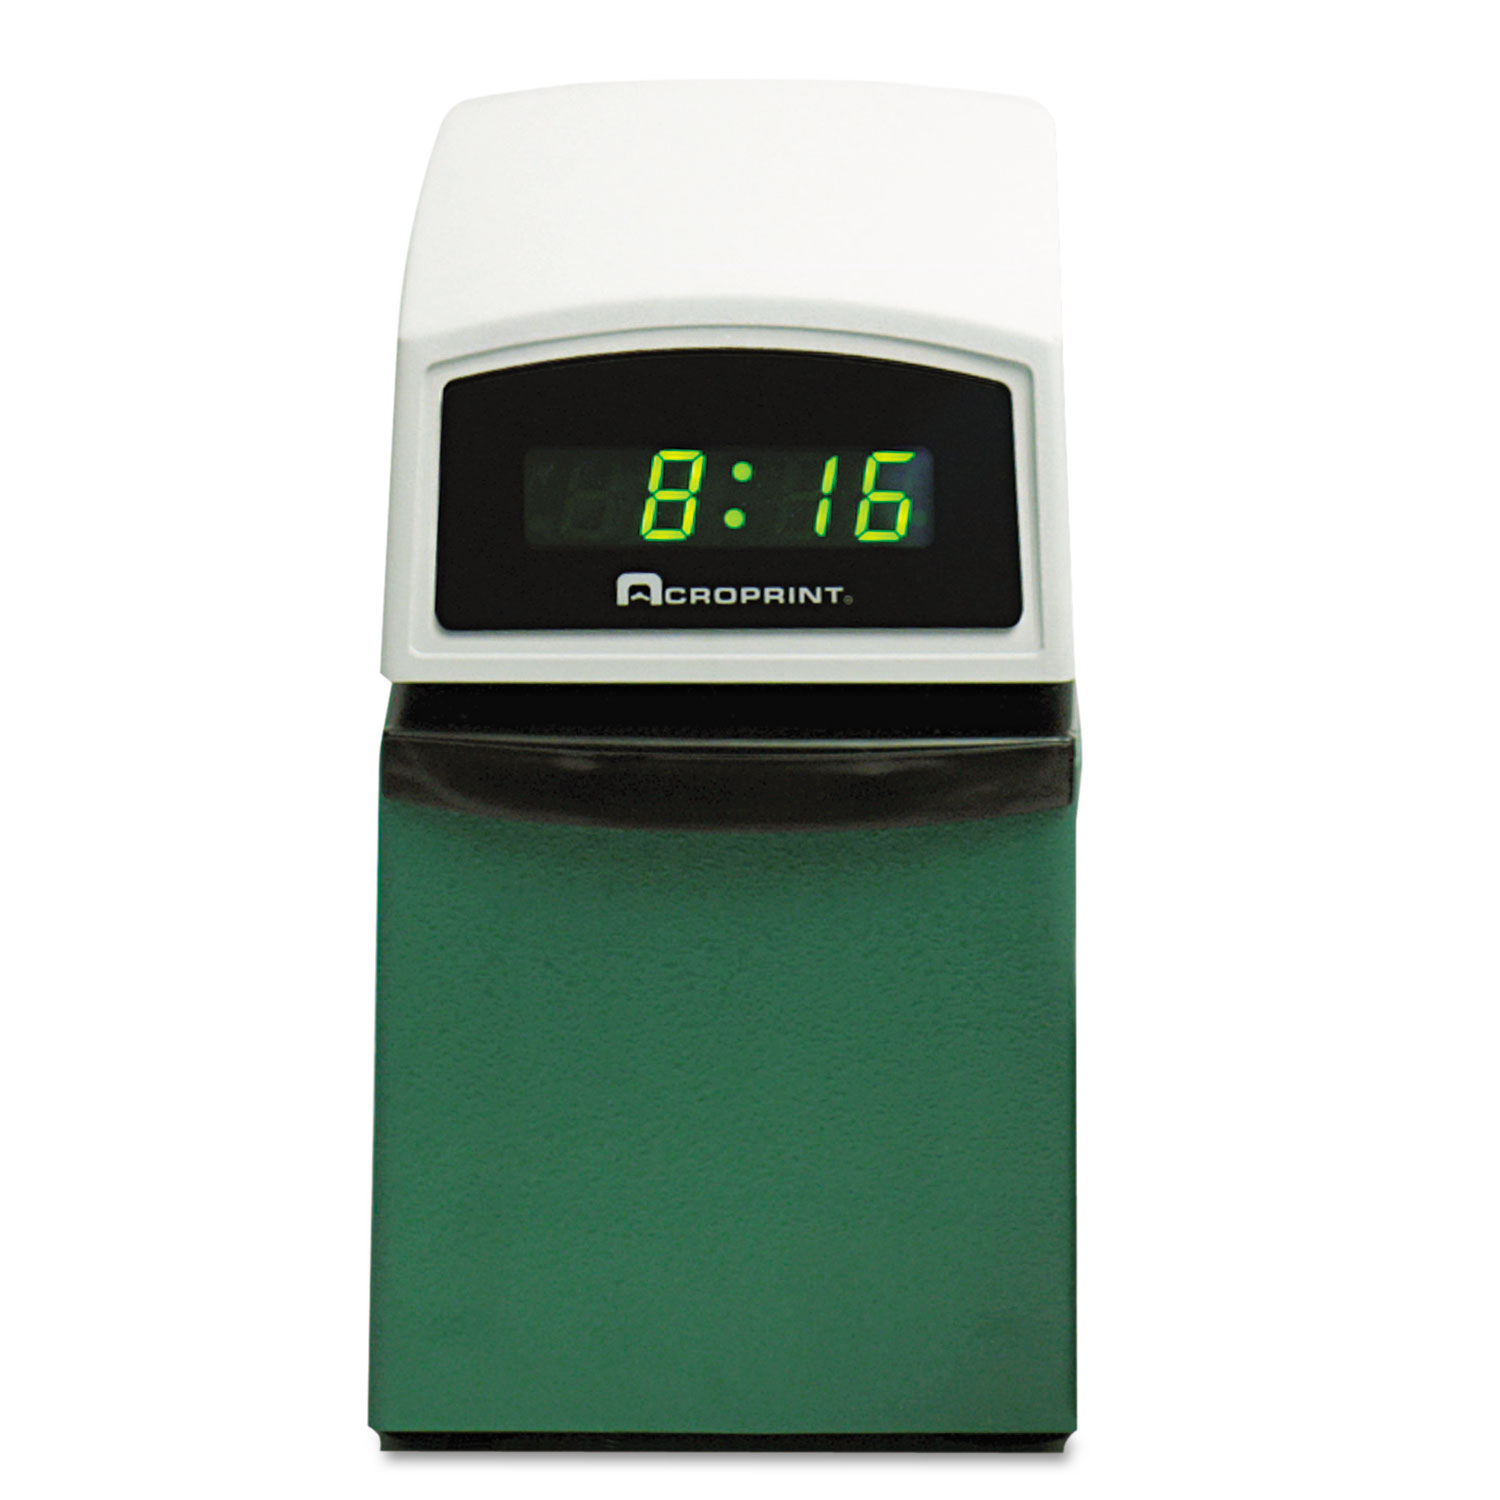 ETC Digital Automatic Time Clock with Stamp